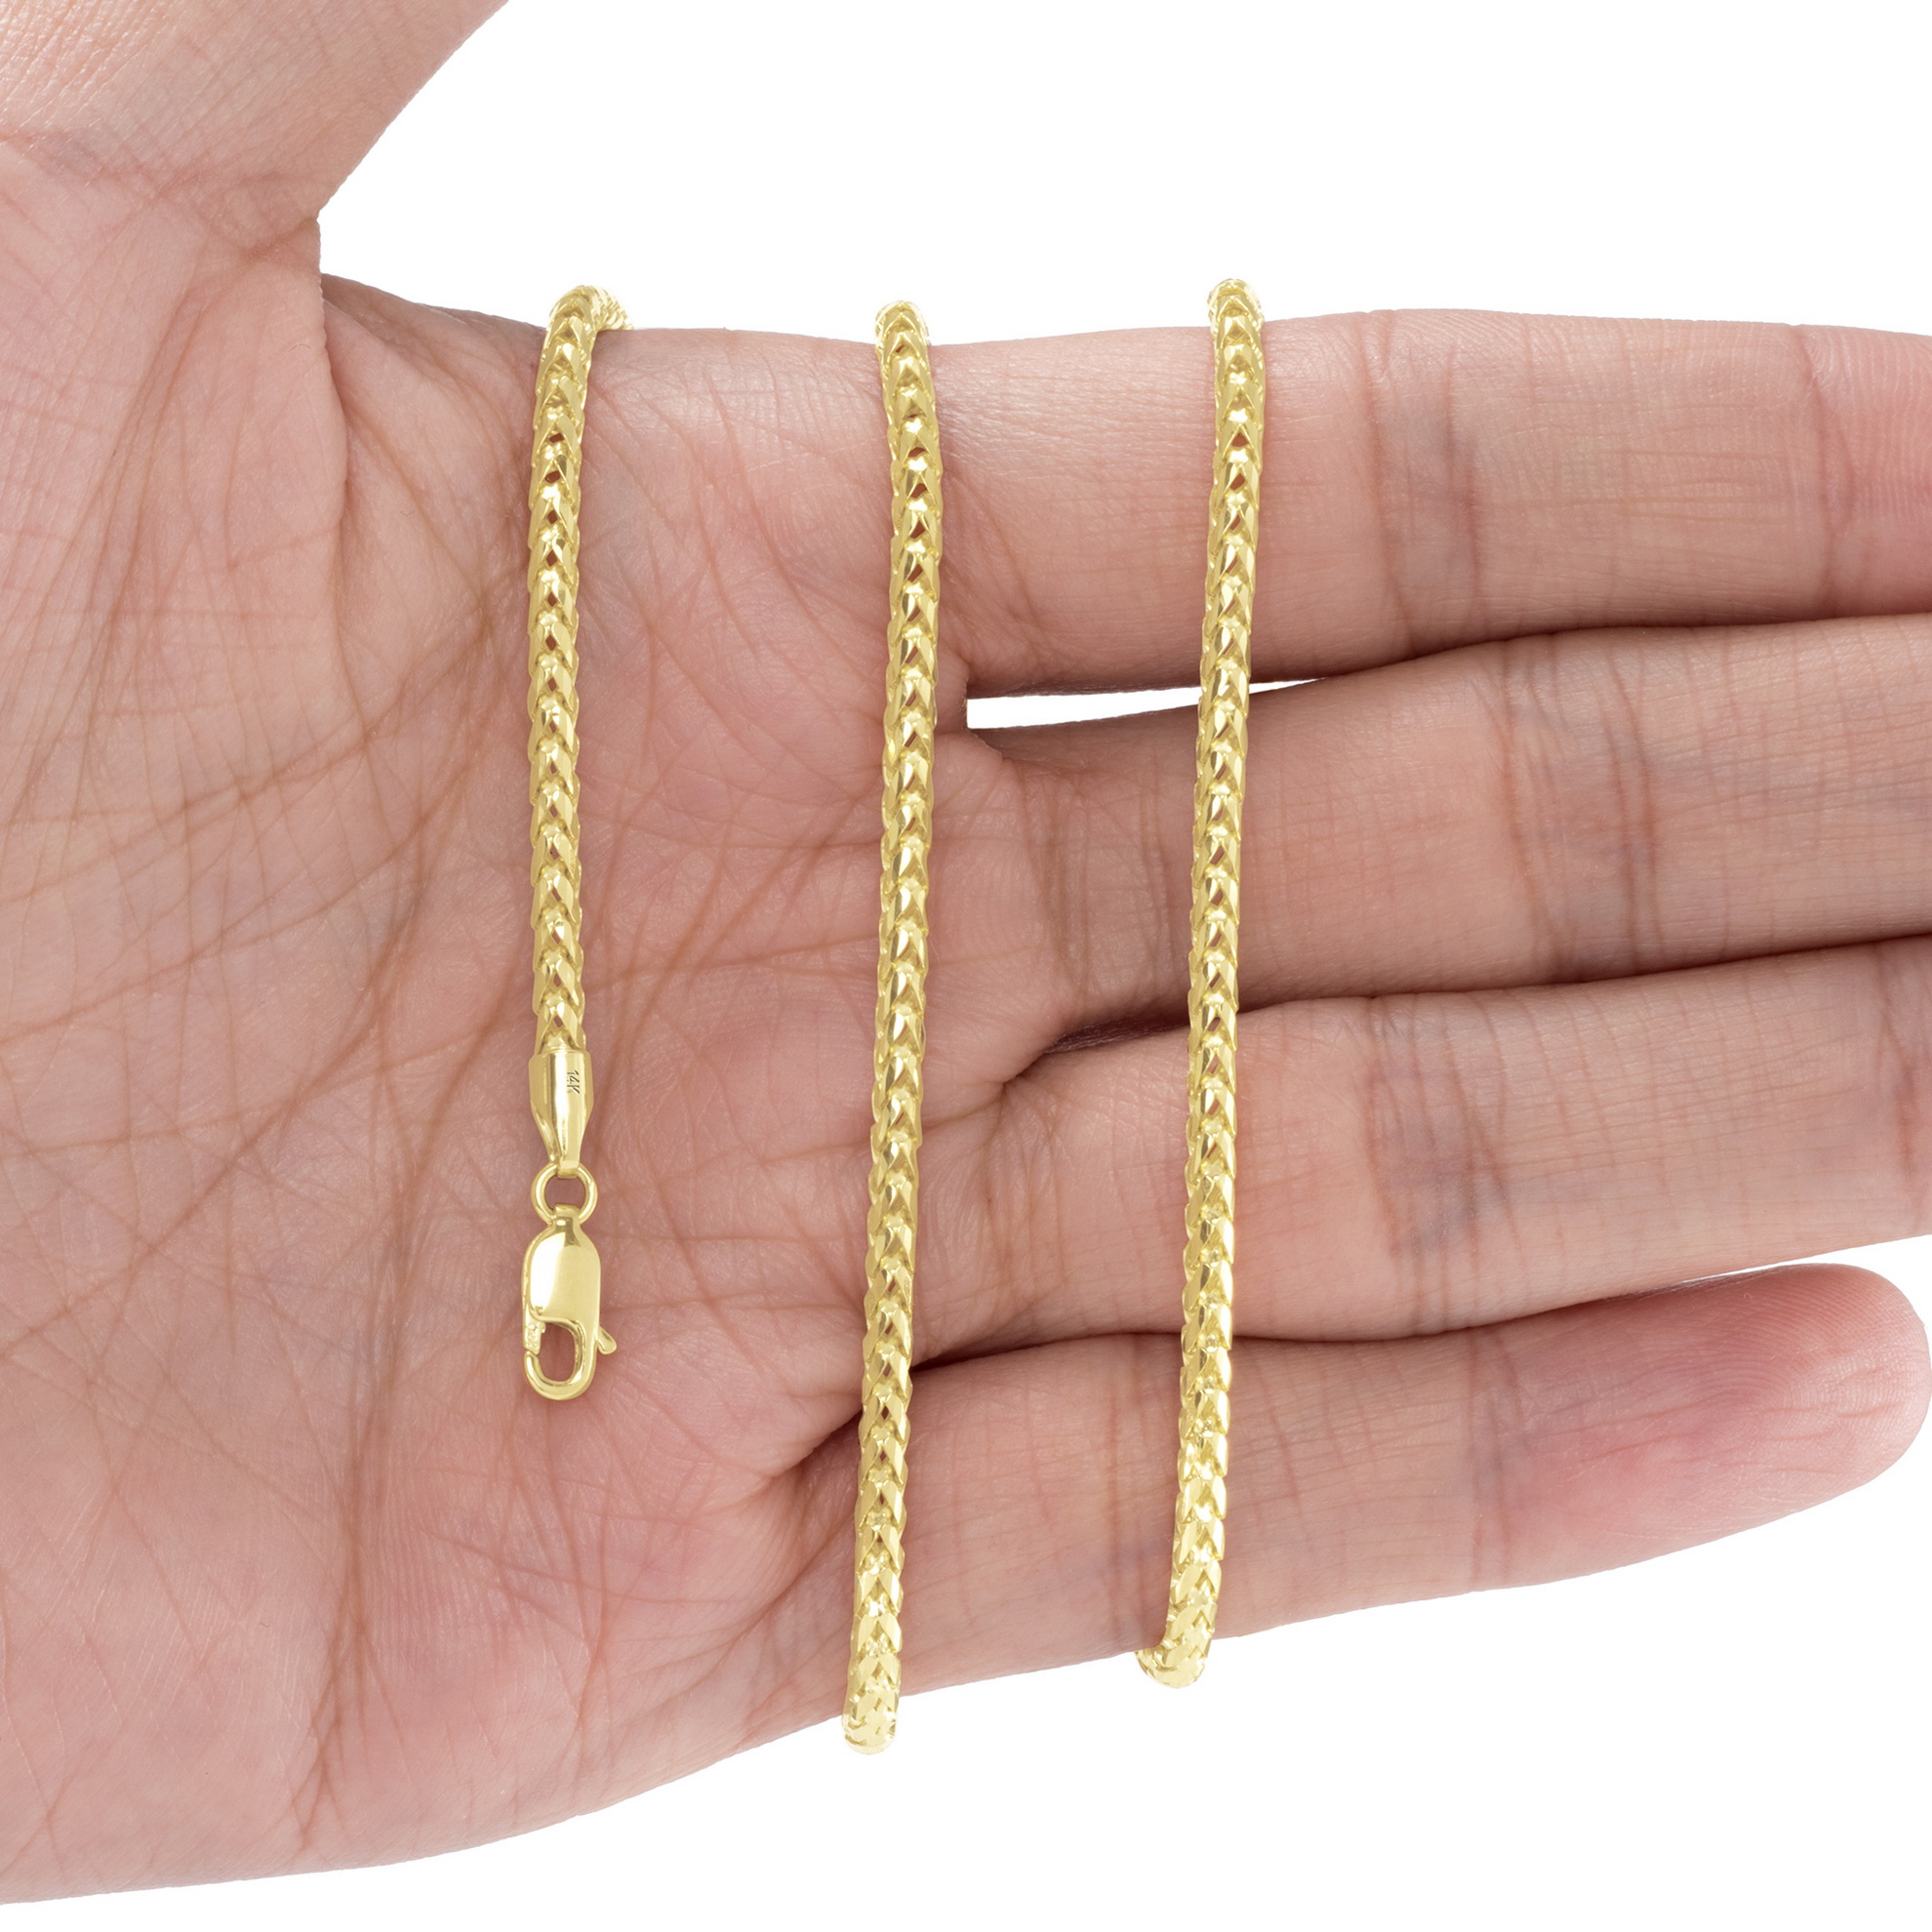 14K-Yellow-Gold-Solid-0-9mm-6mm-Round-Box-Franco-Chain-Pendant-Necklace-16-034-30-034 thumbnail 19